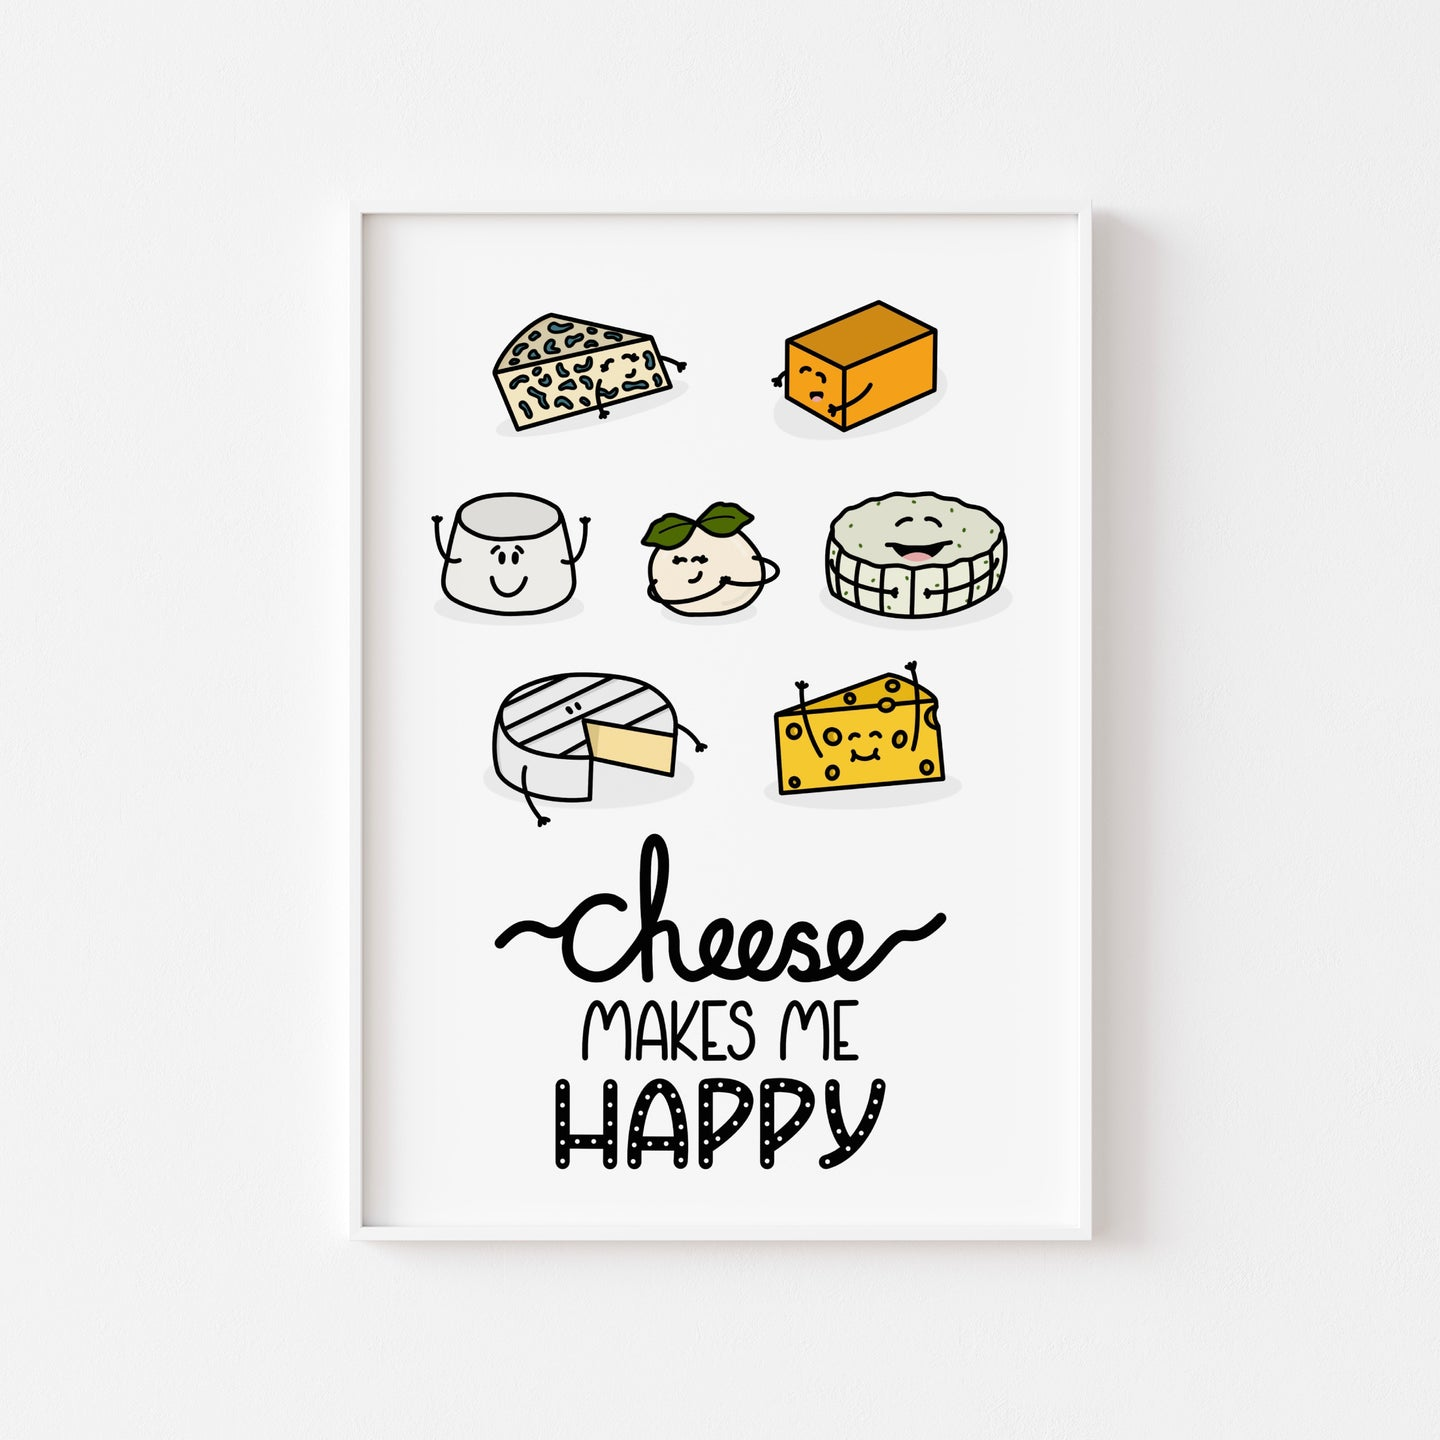 A photograph of our Cheese Makes Me Happy print on a white wall in a white frame - The illustration includes seven cheeses and reads 'cheese makes me happy' in hand lettering. The cheeses all have cute little faces and arms and are (clockwise from top left) Stilton, Red Leicester, Halloumi, Emmental, Camembert, Ricotta, with a mozzarella in the centre wearing a hat made from mint leaves.